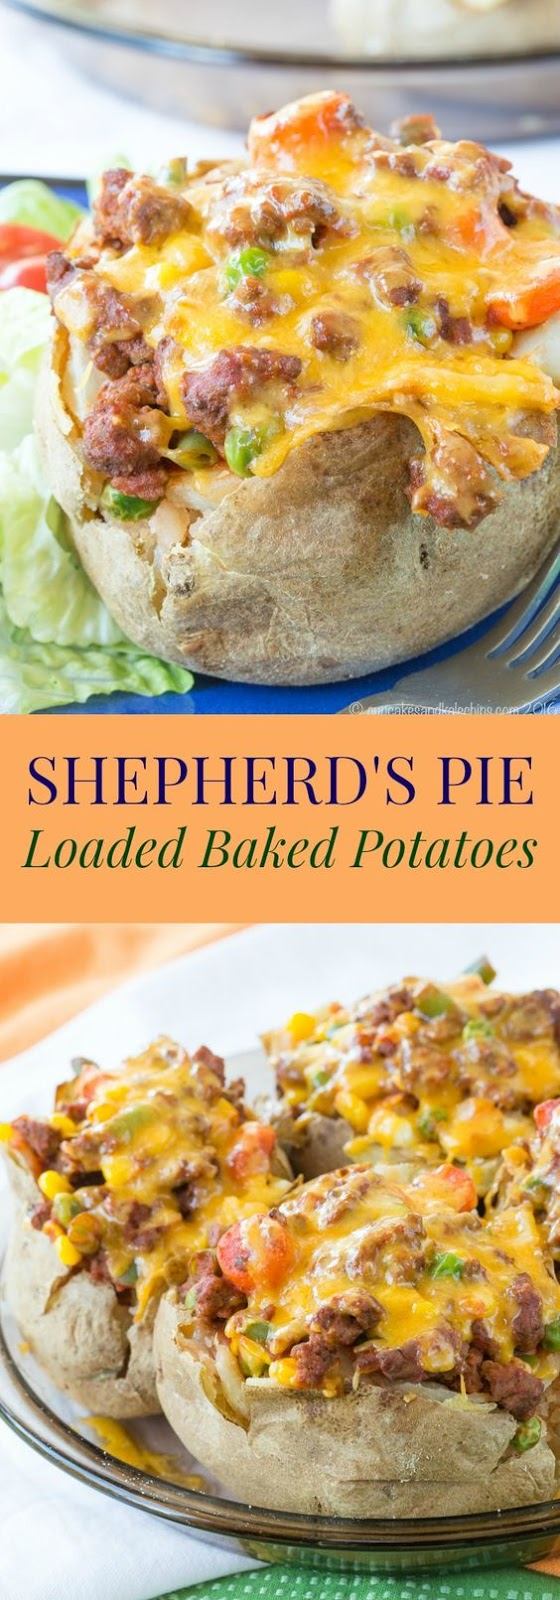 Shepherd's Pie Loaded Baked Potatoes Recipe